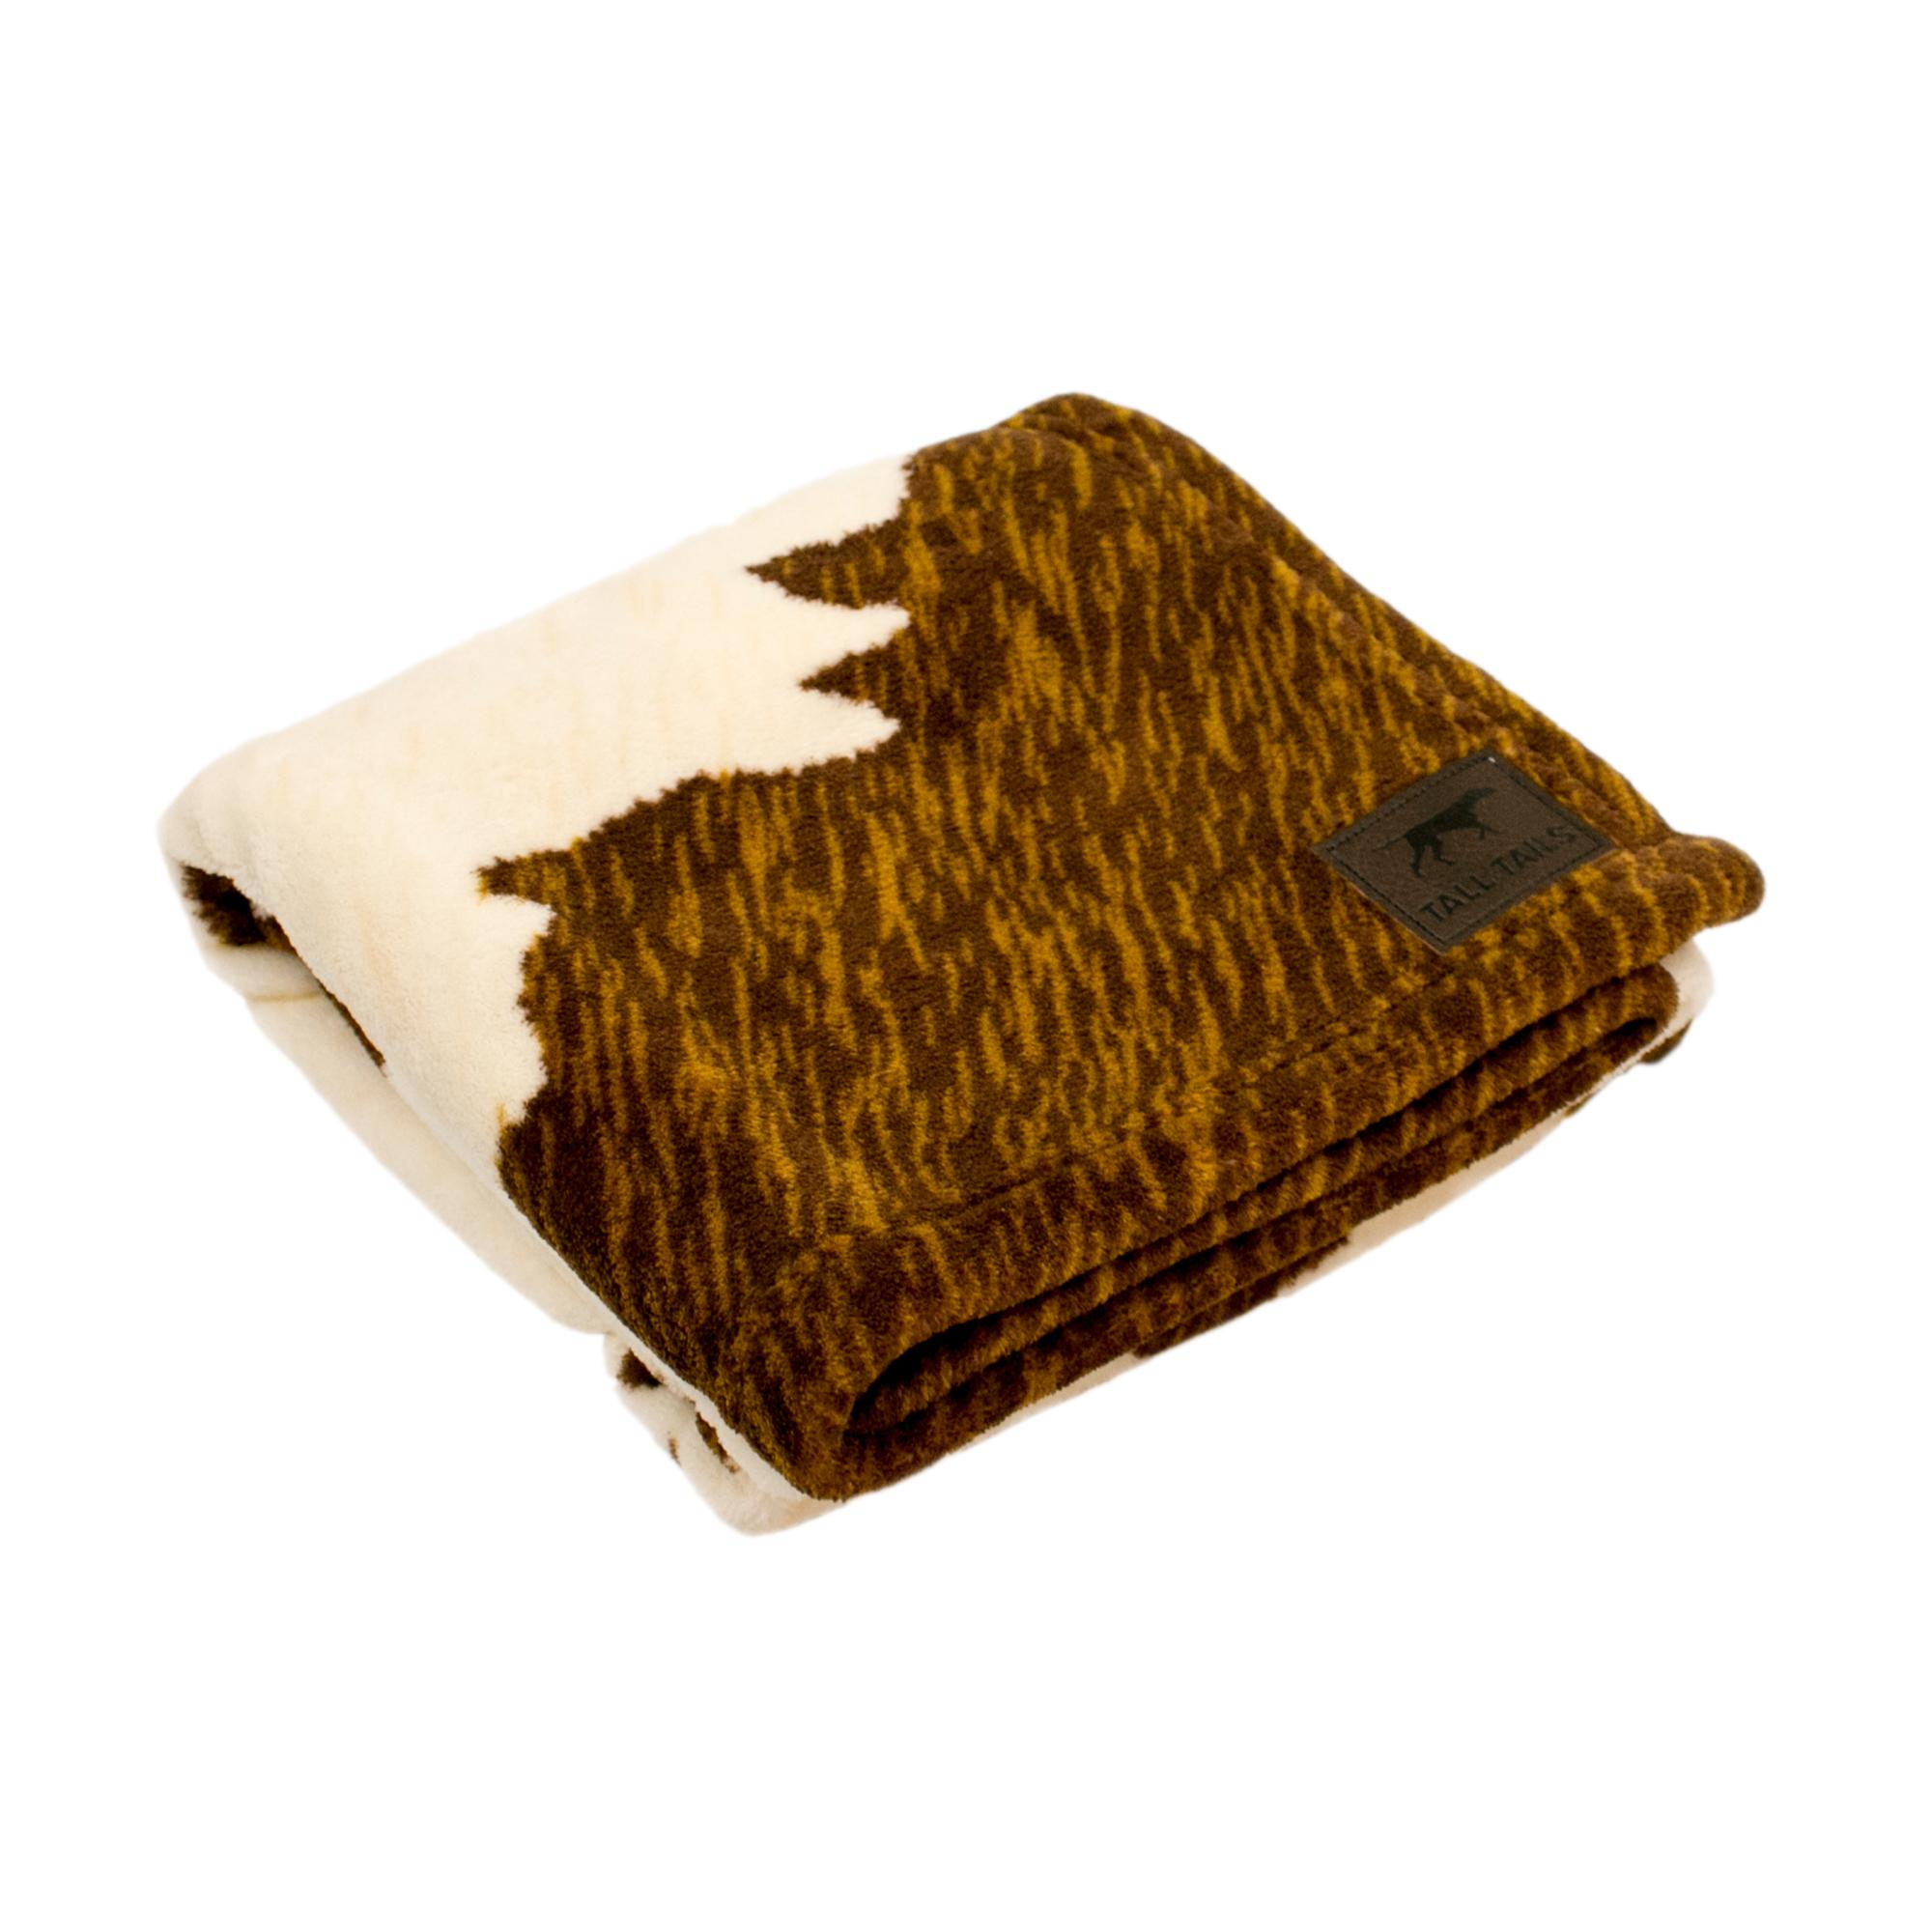 Tall Tails Cowhide Dog Blanket, 30x40 (Size: 30x40) Image